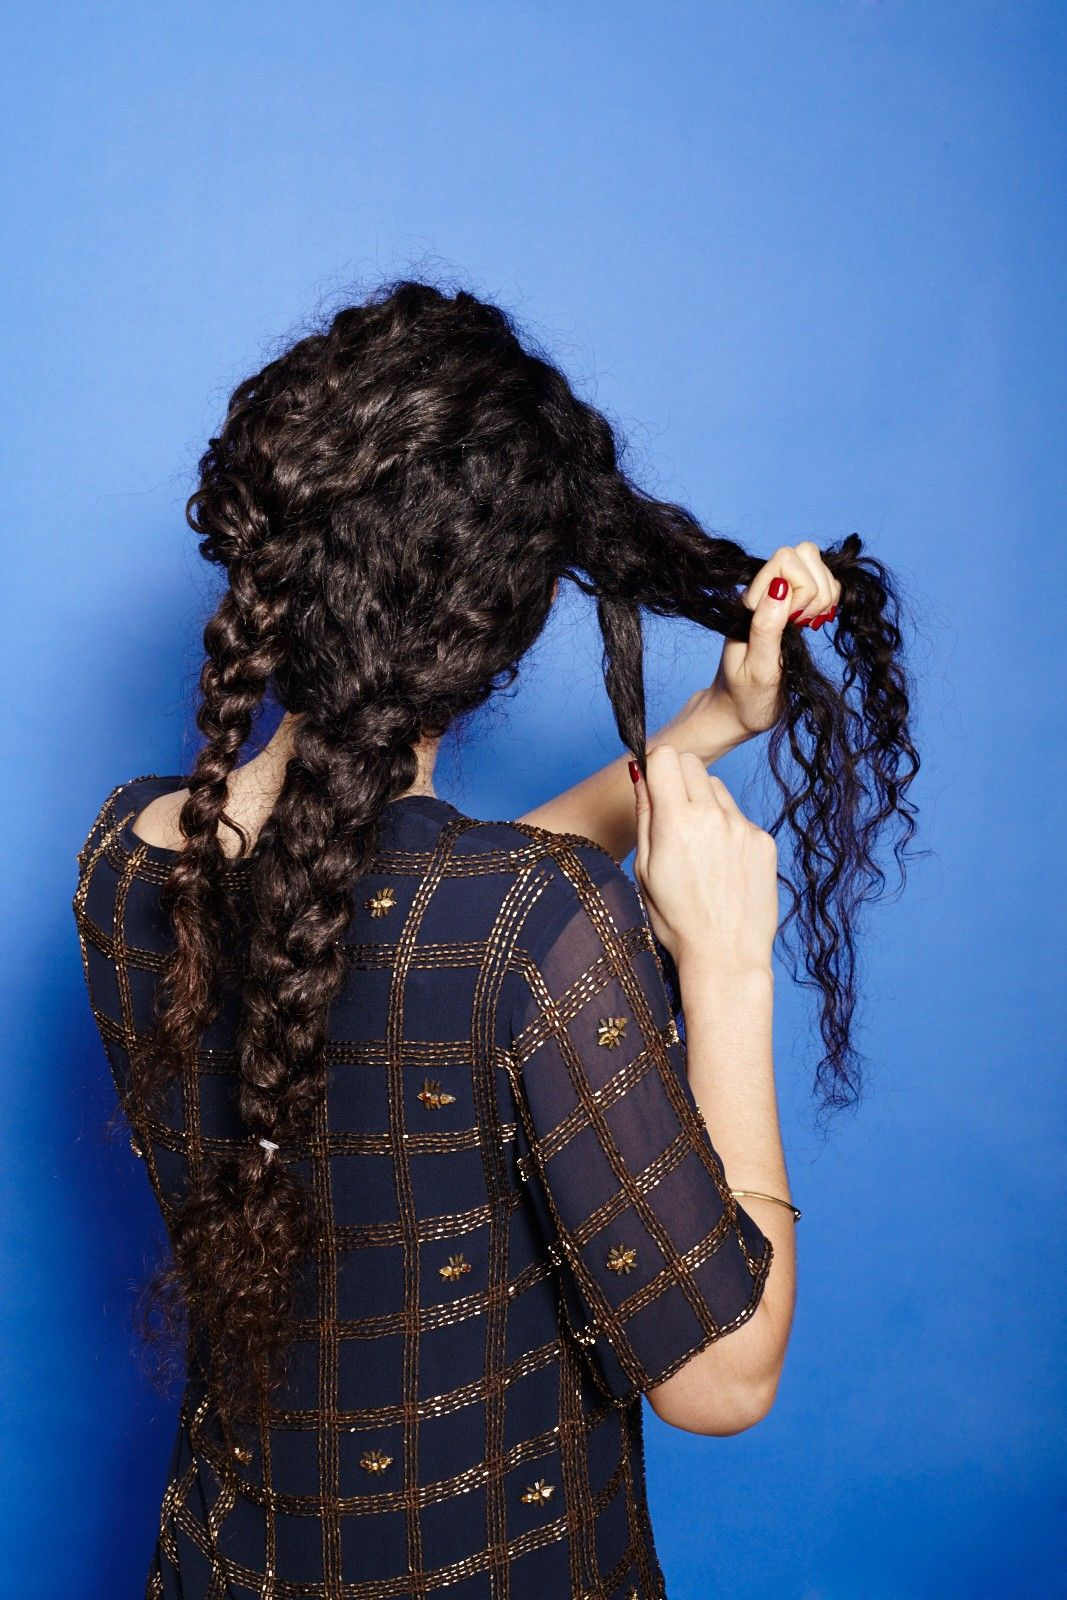 Unruly-Braid-in-Narrow-Curly-Hair Worth Trying Curly Hairstyles with Braids